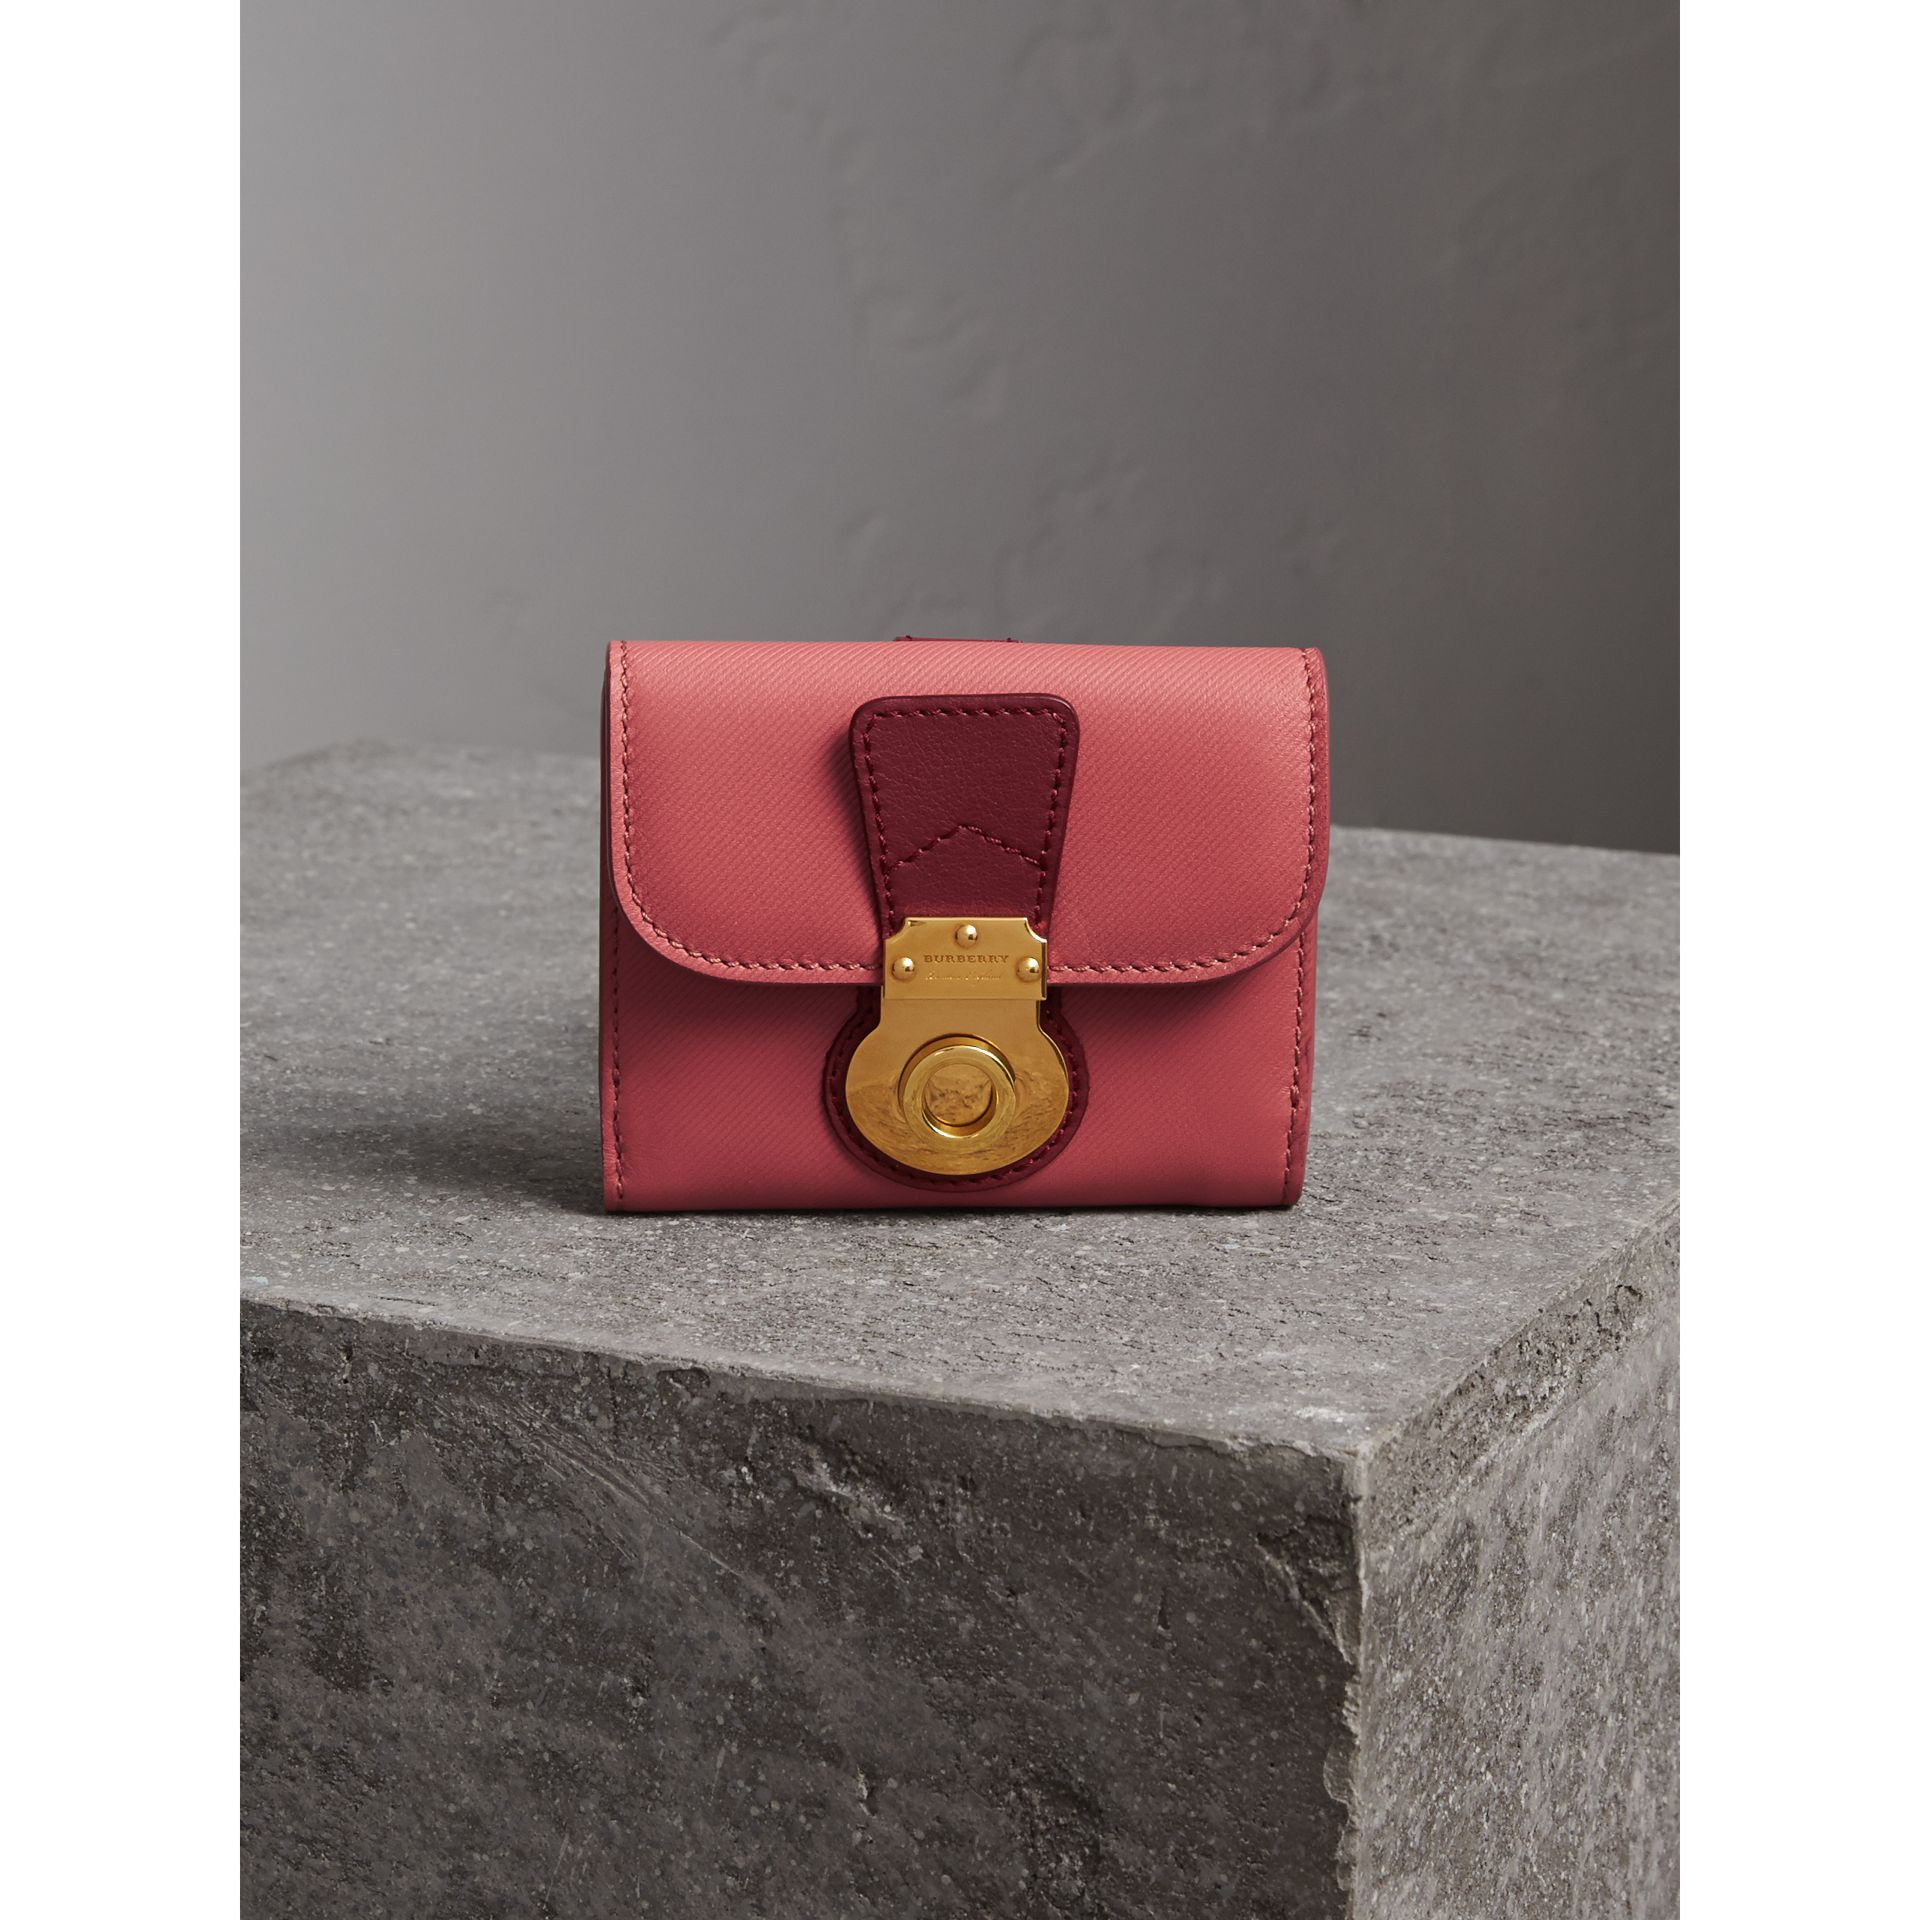 Two-tone Trench Leather Wallet in Blossom Pink/ Antique Red - Women | Burberry - gallery image 6